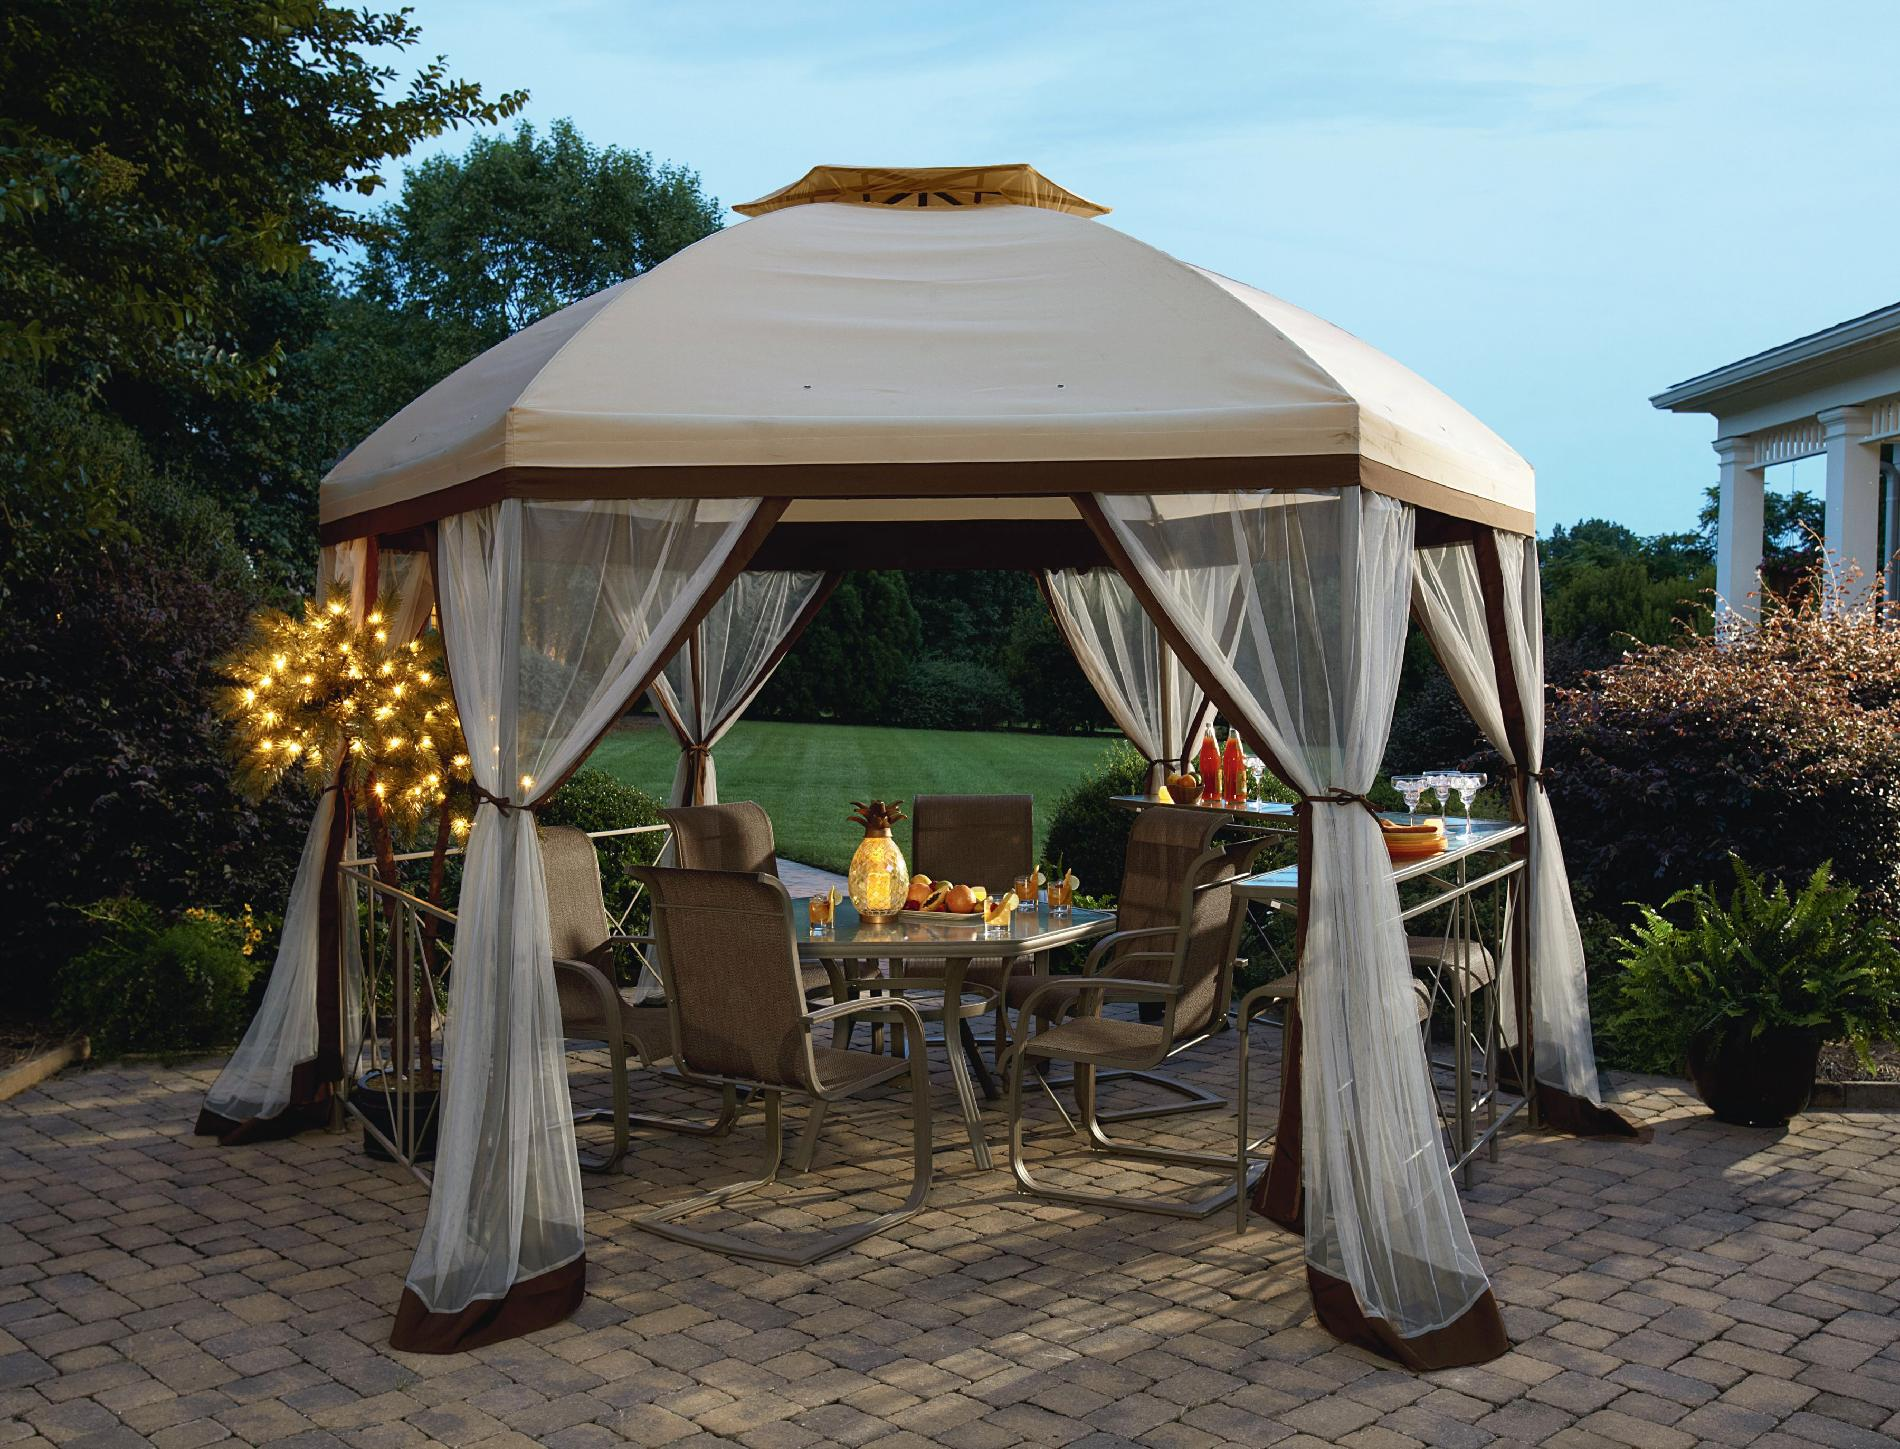 Garden Oasis Long Beach 13' Hex Gazebo with Net